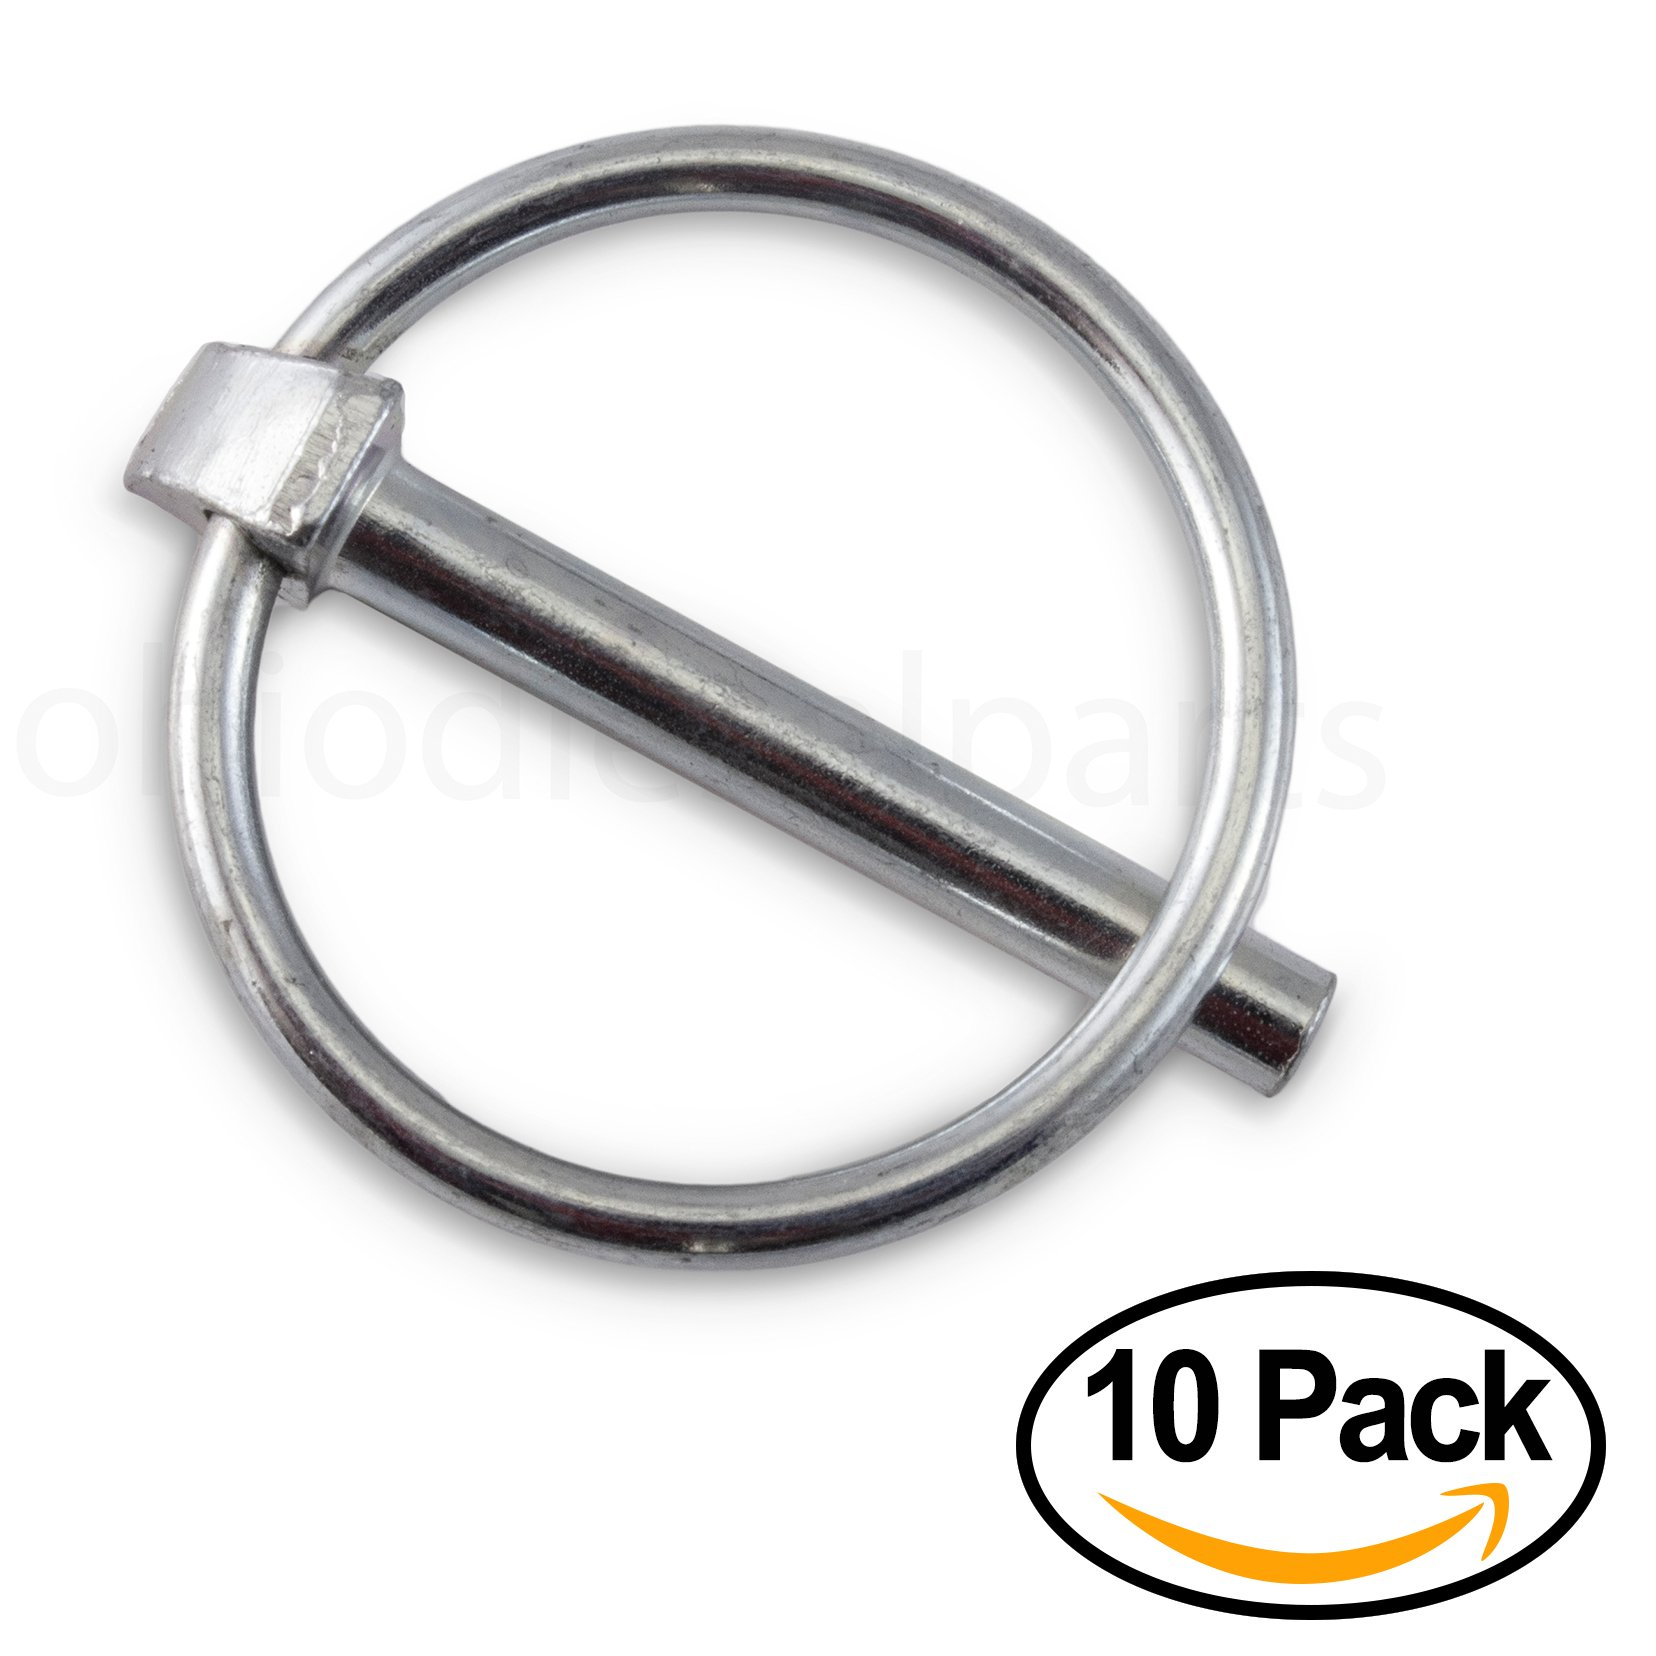 Linch Pin with Ring 3/16'' x 1-3/4 Inch (Pack of 10)